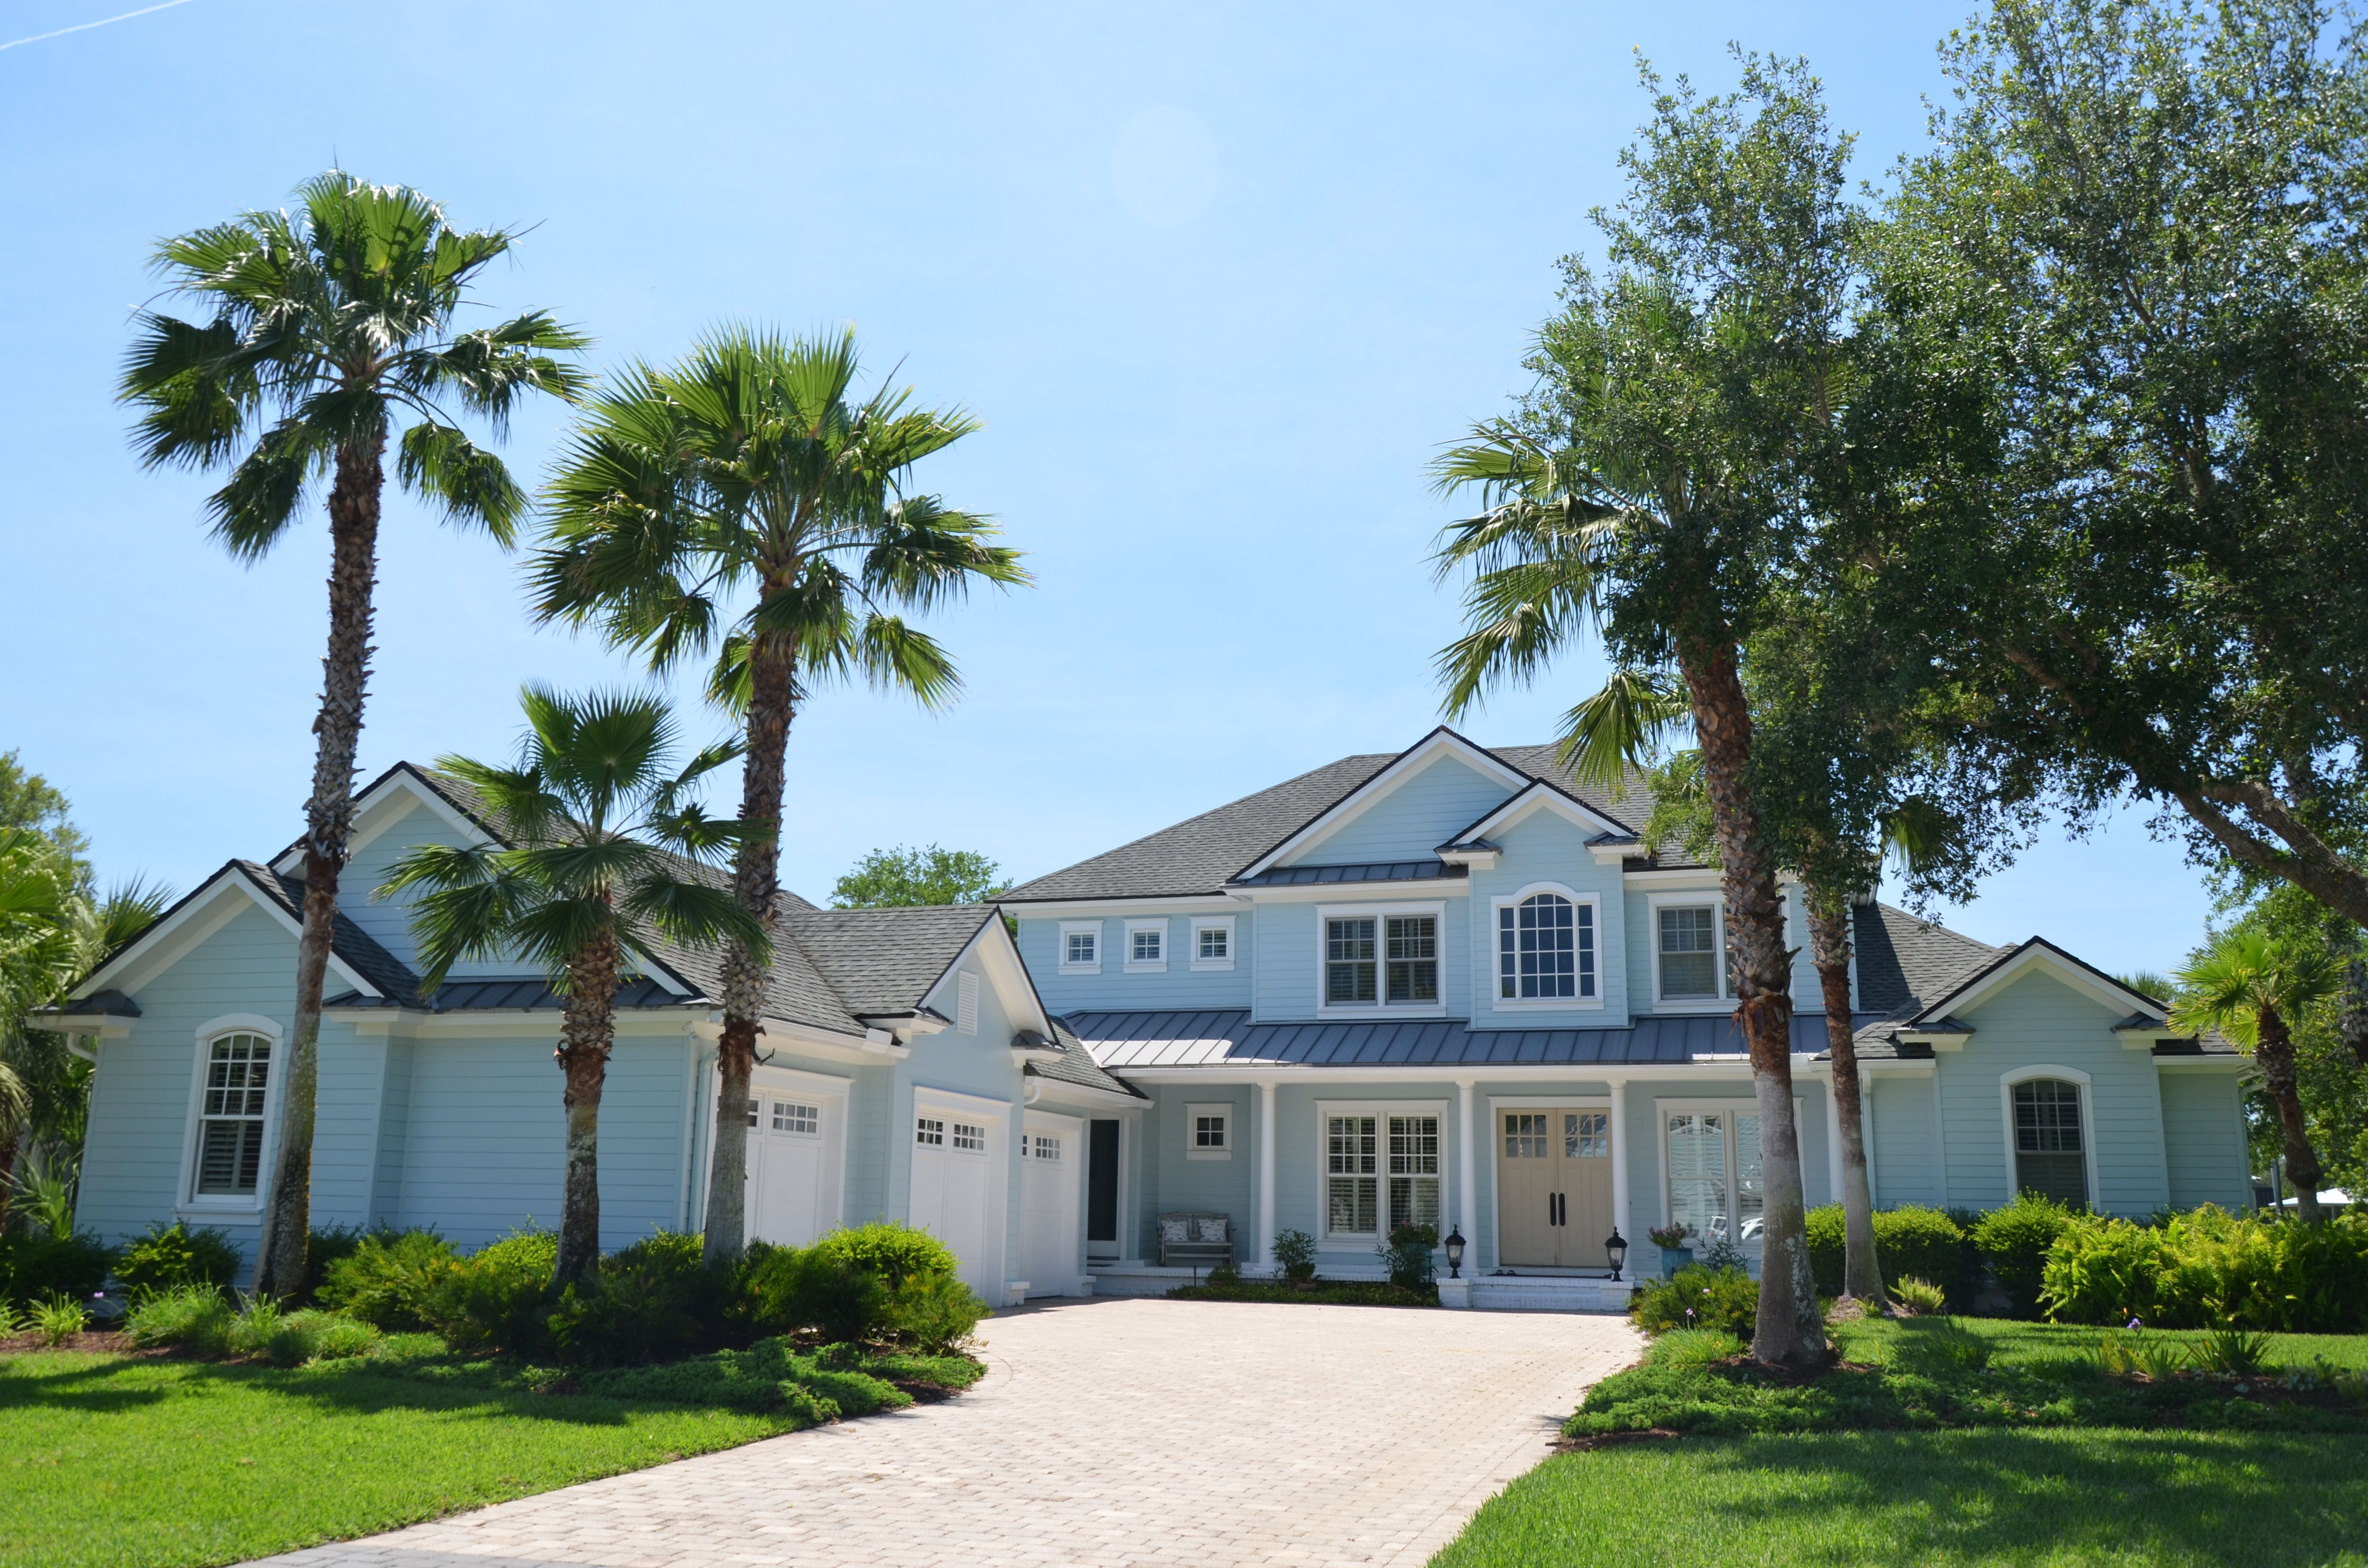 Real Estate By The Regnier Group In 2020 Florida Real Estate South Florida Real Estate Waterfront Homes For Sale